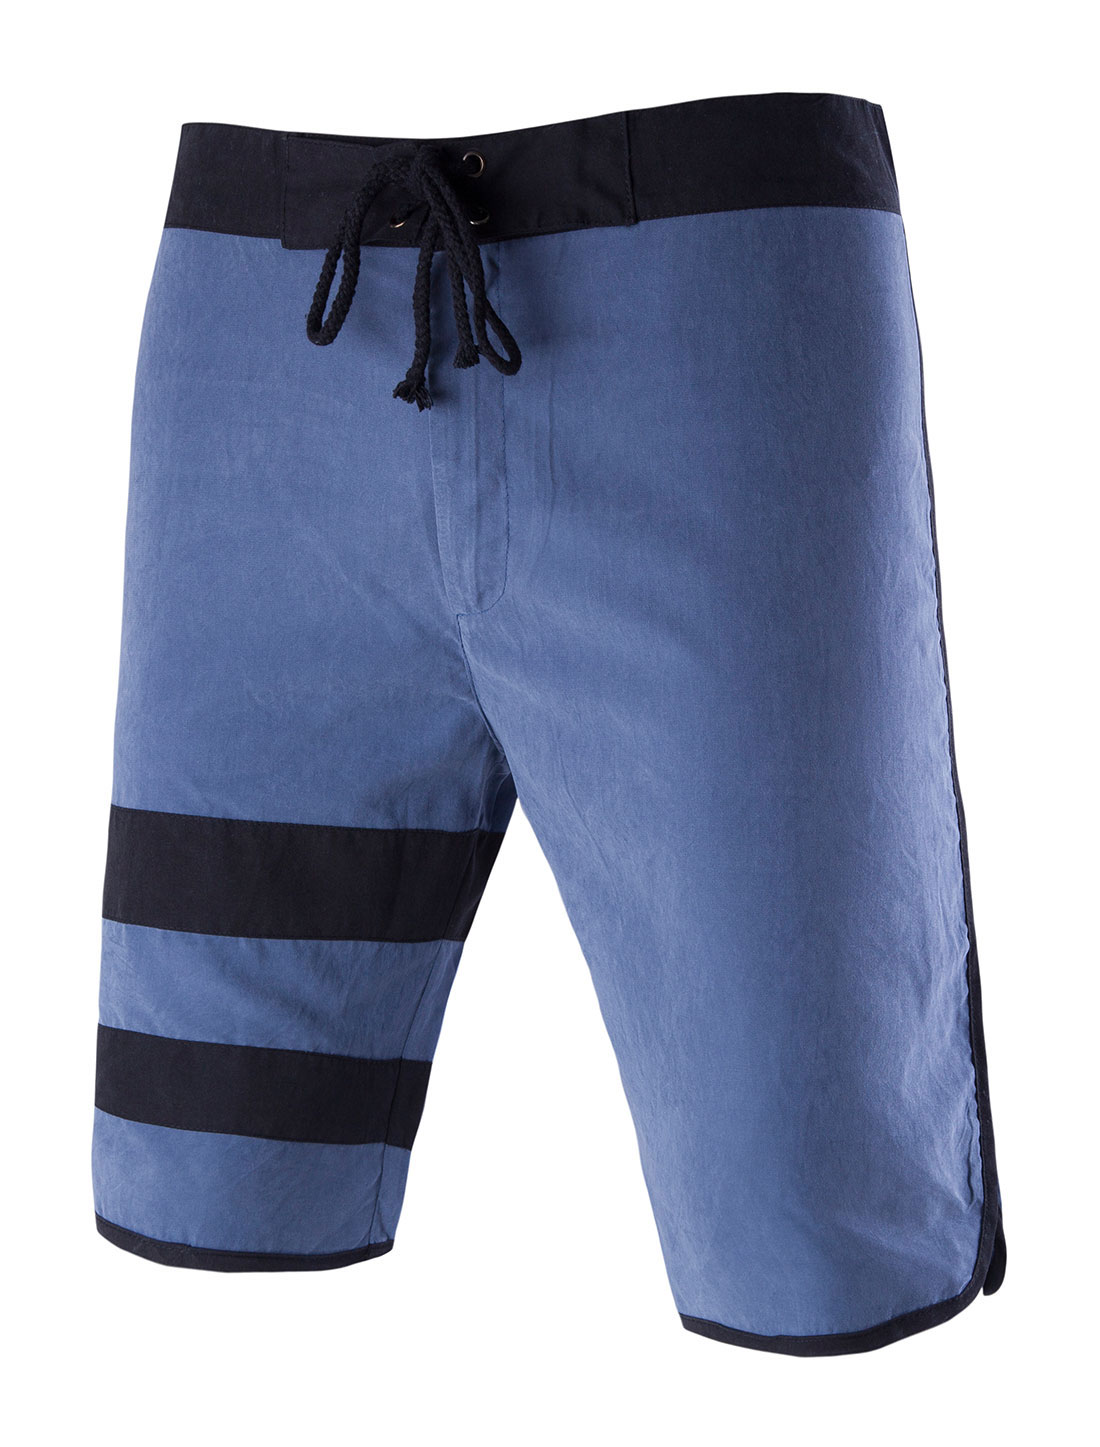 Men Drawstring Waist Contrast Color Boardshort Blue W32